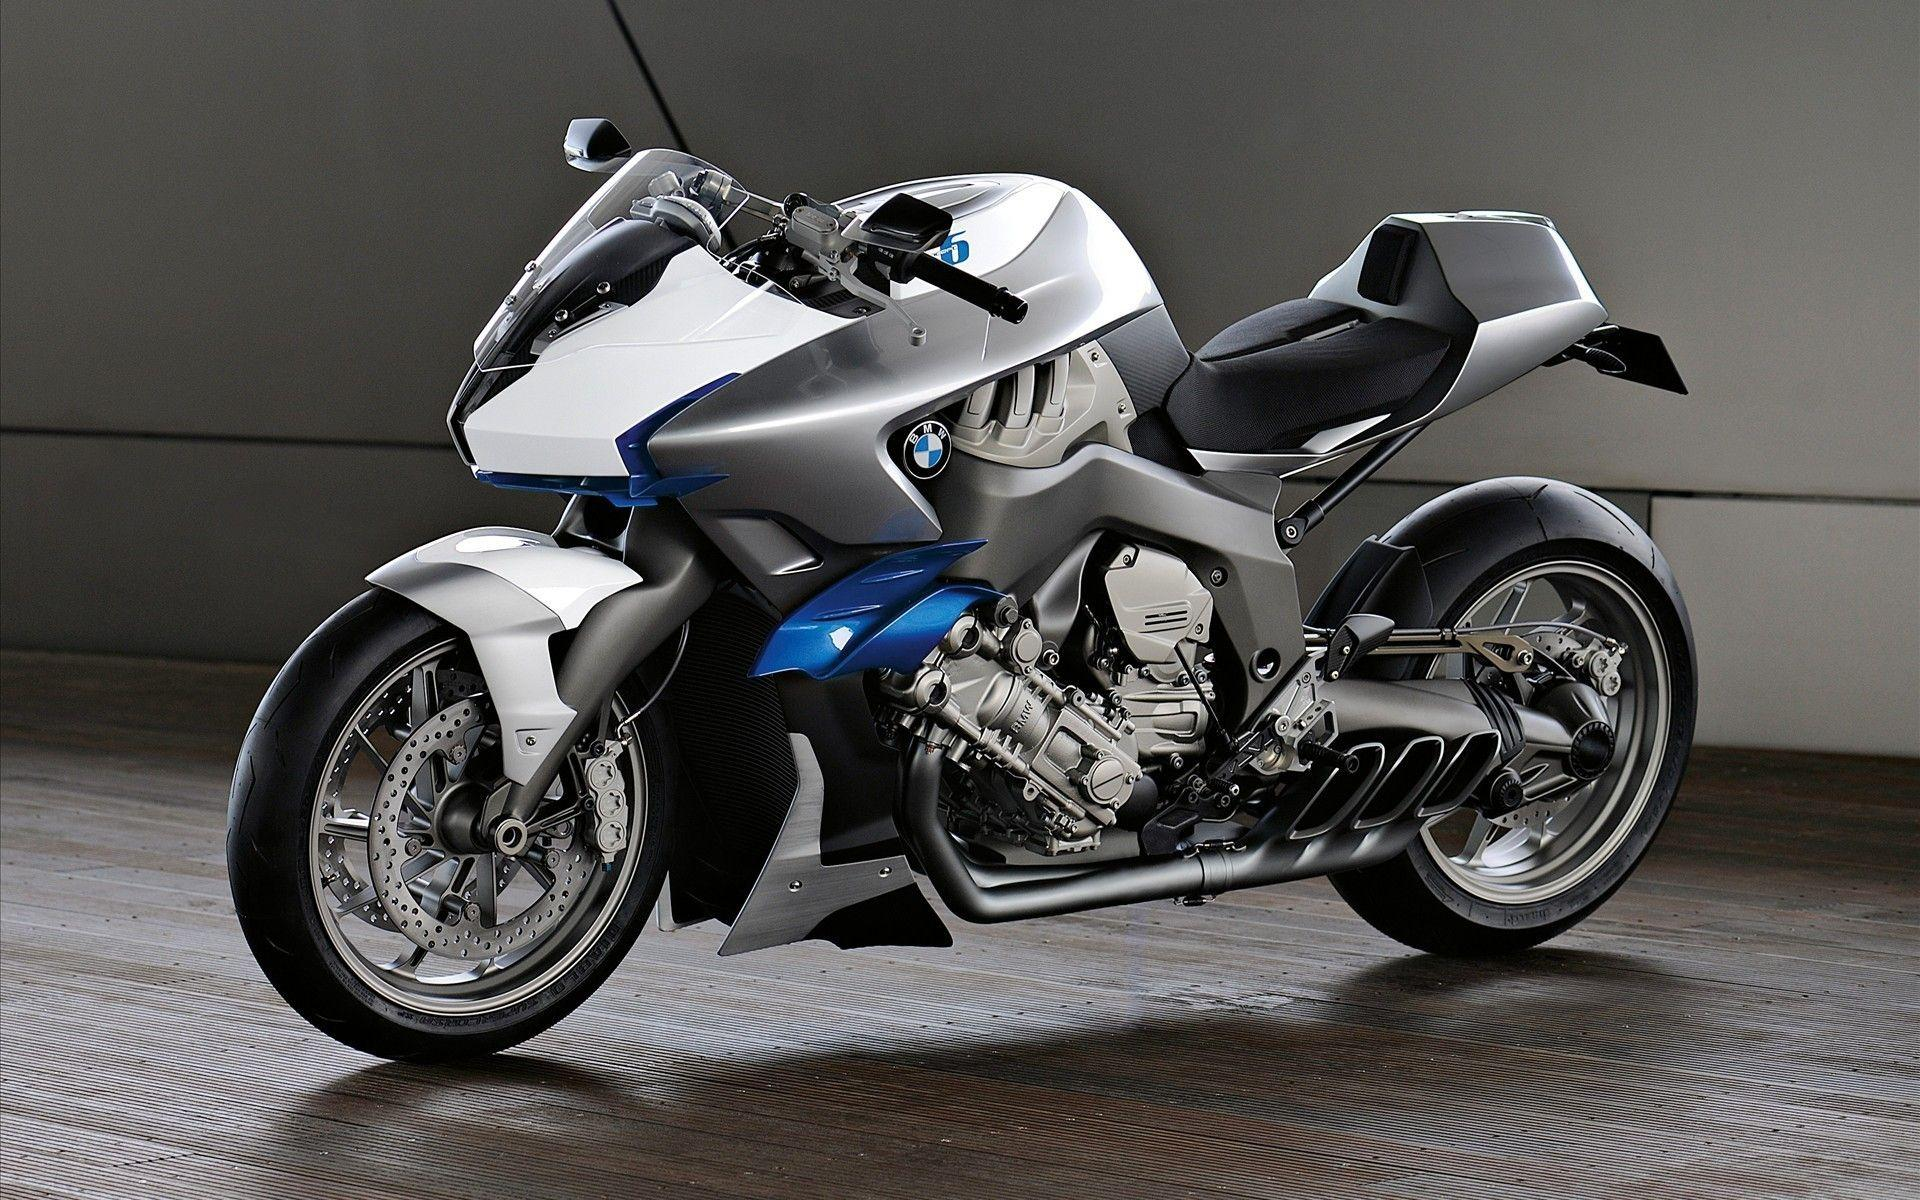 Bmw Bikes Wallpapers Top Free Bmw Bikes Backgrounds